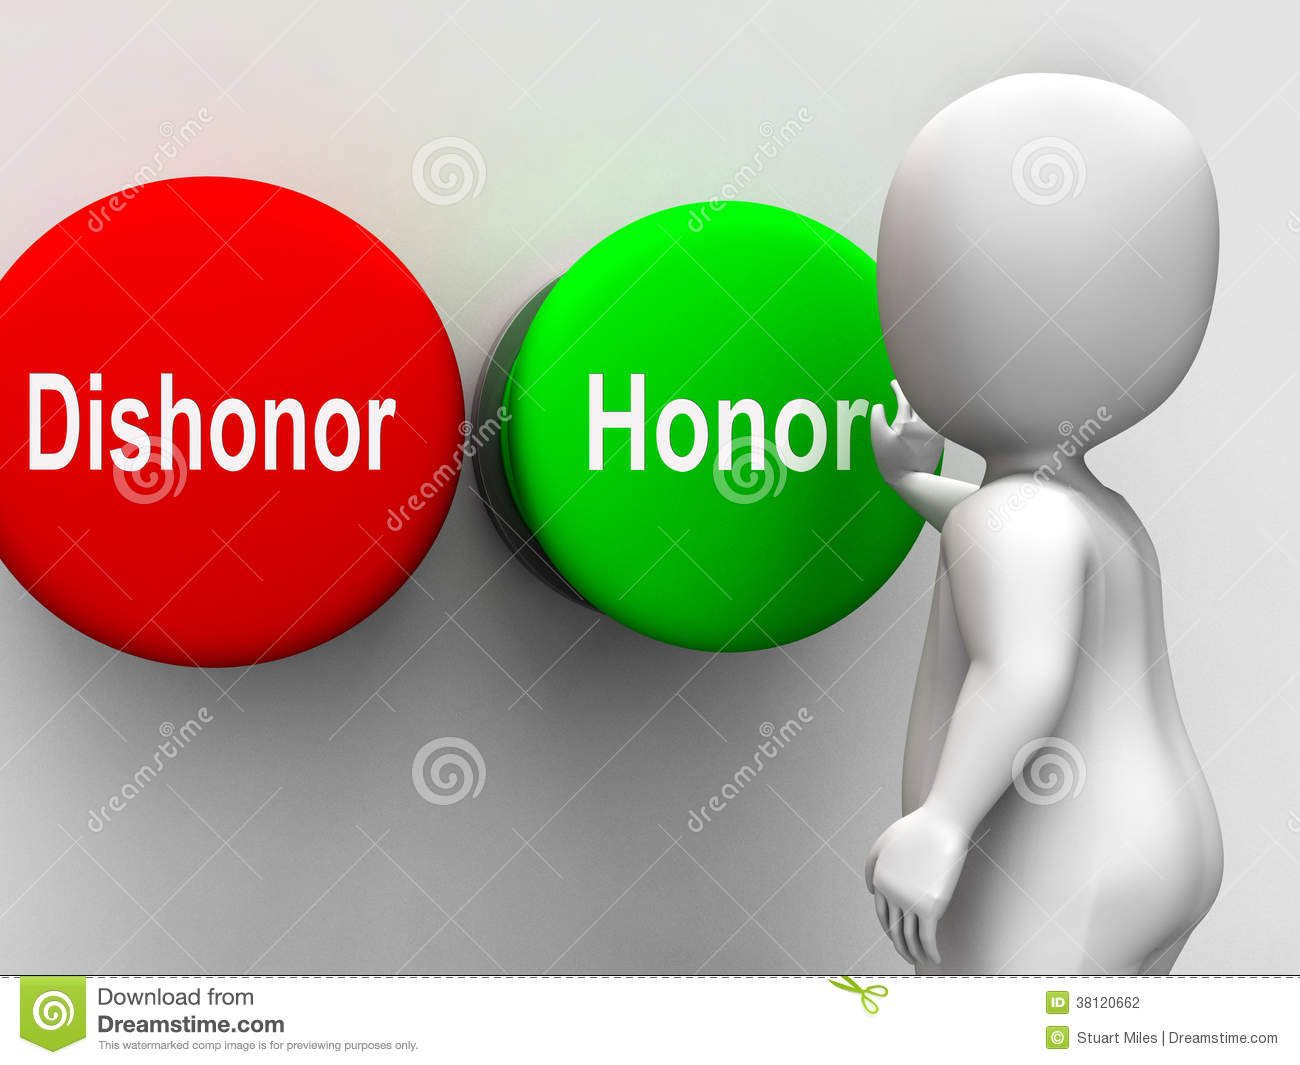 Dishonor Honor Keys Shows Integrity And Morals Royalty Free Stock.